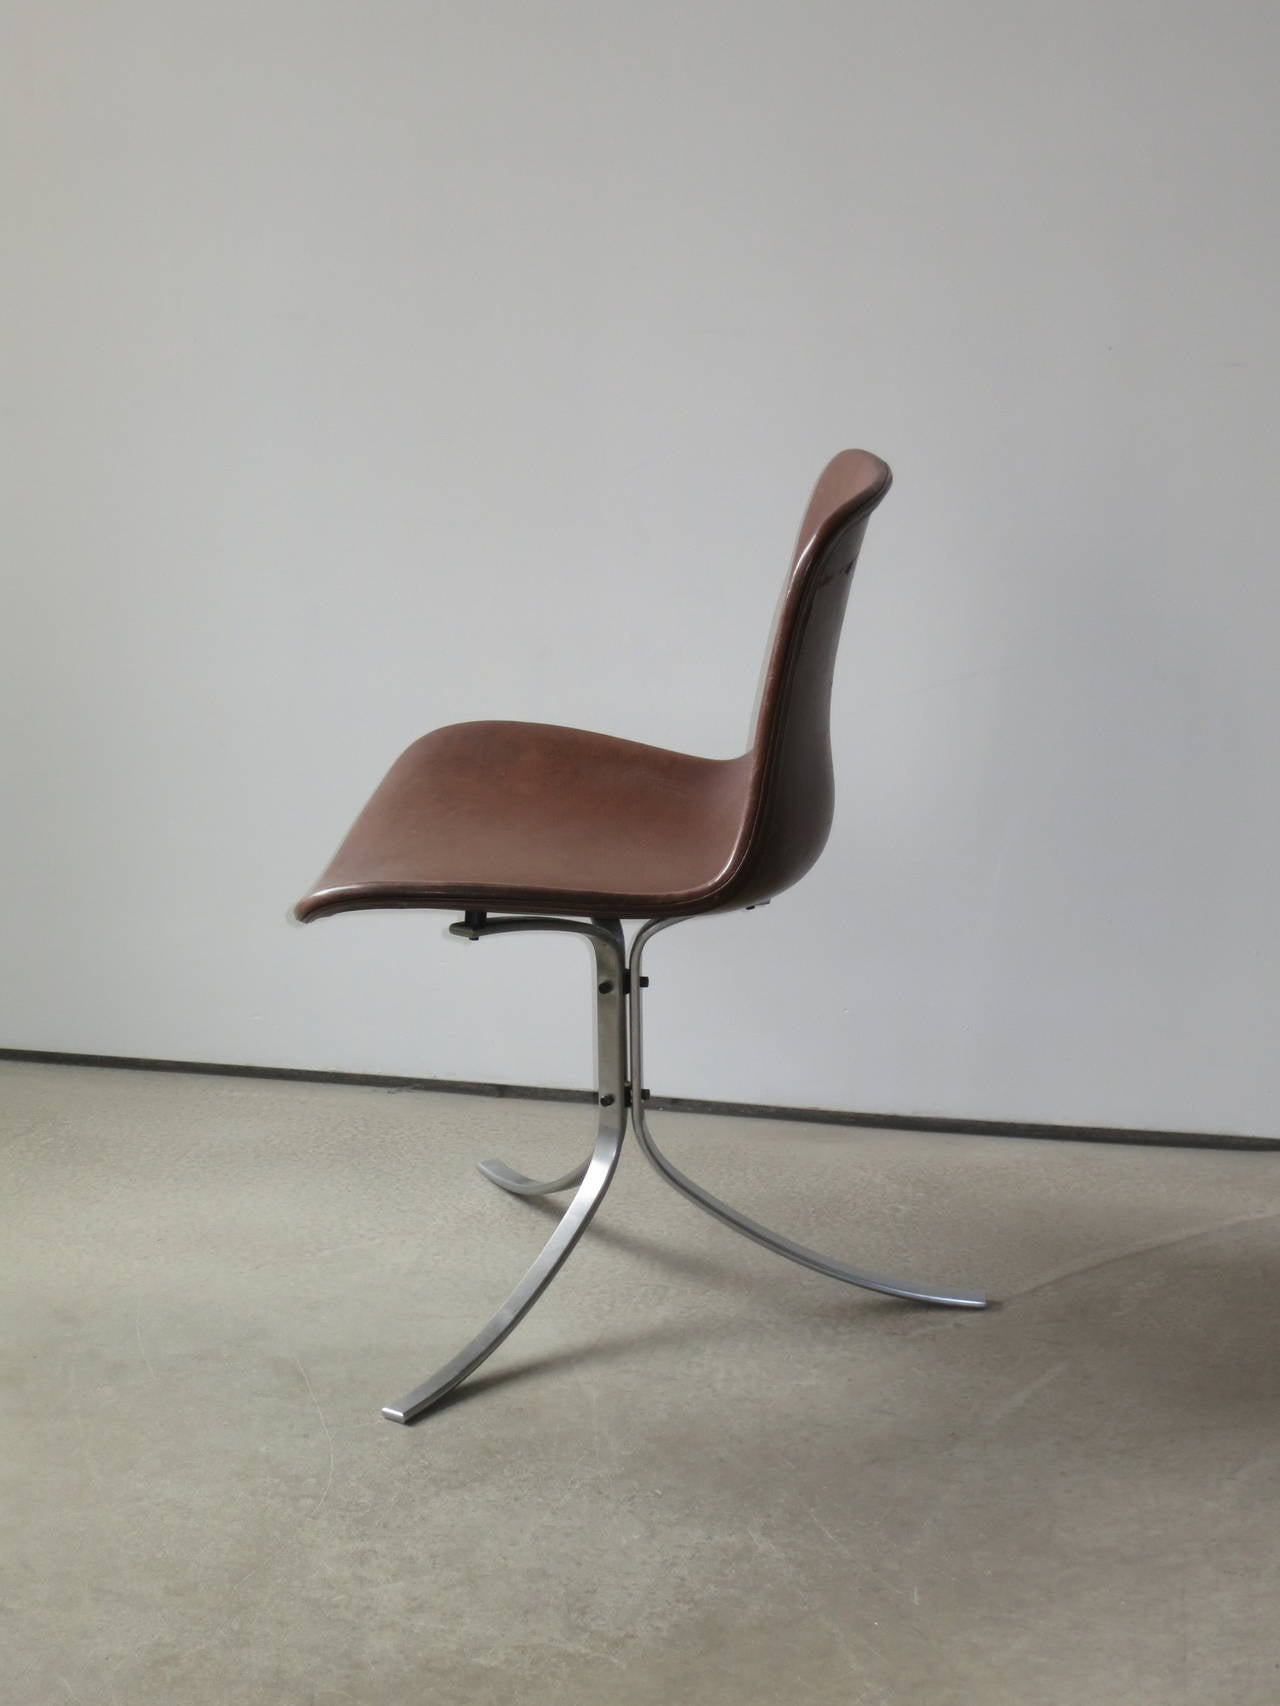 Danish PK-9 Chair by Poul Kjærholm in patinated brown leather For Sale